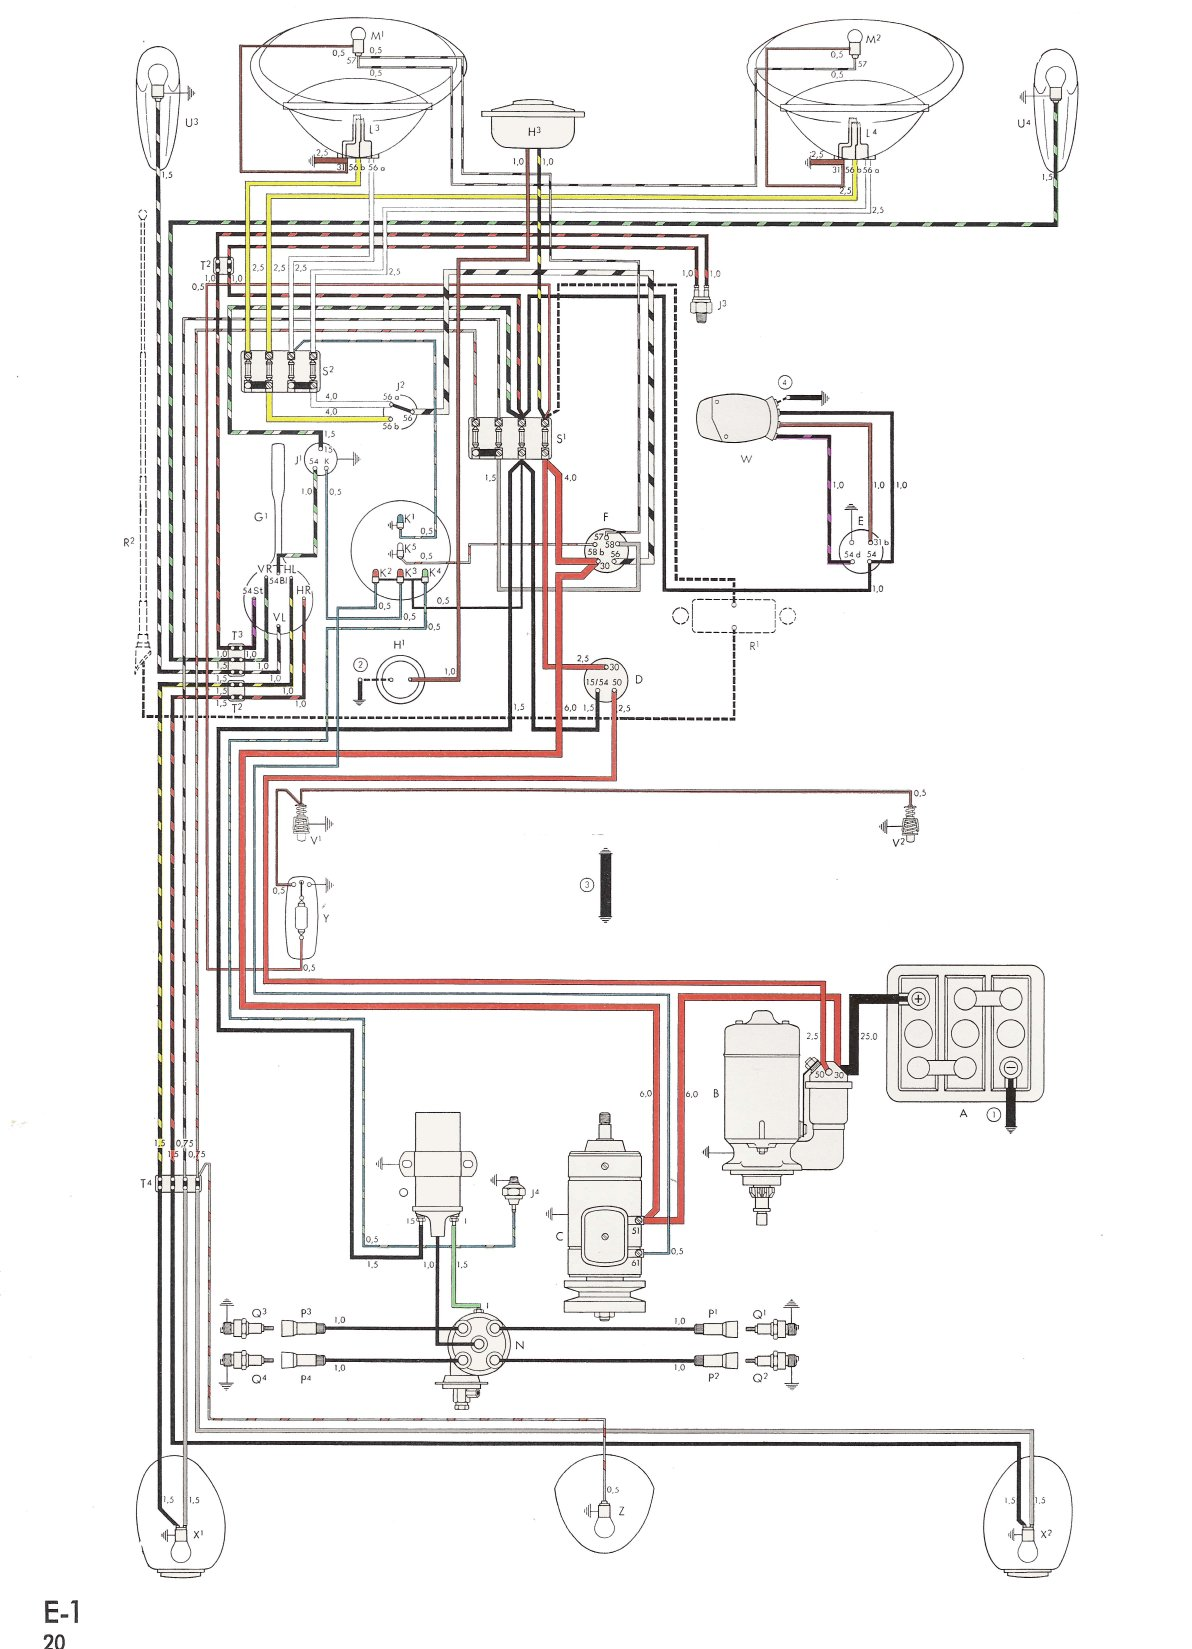 bug60 thesamba com type 1 wiring diagrams 73 vw beetle wiring diagram at nearapp.co